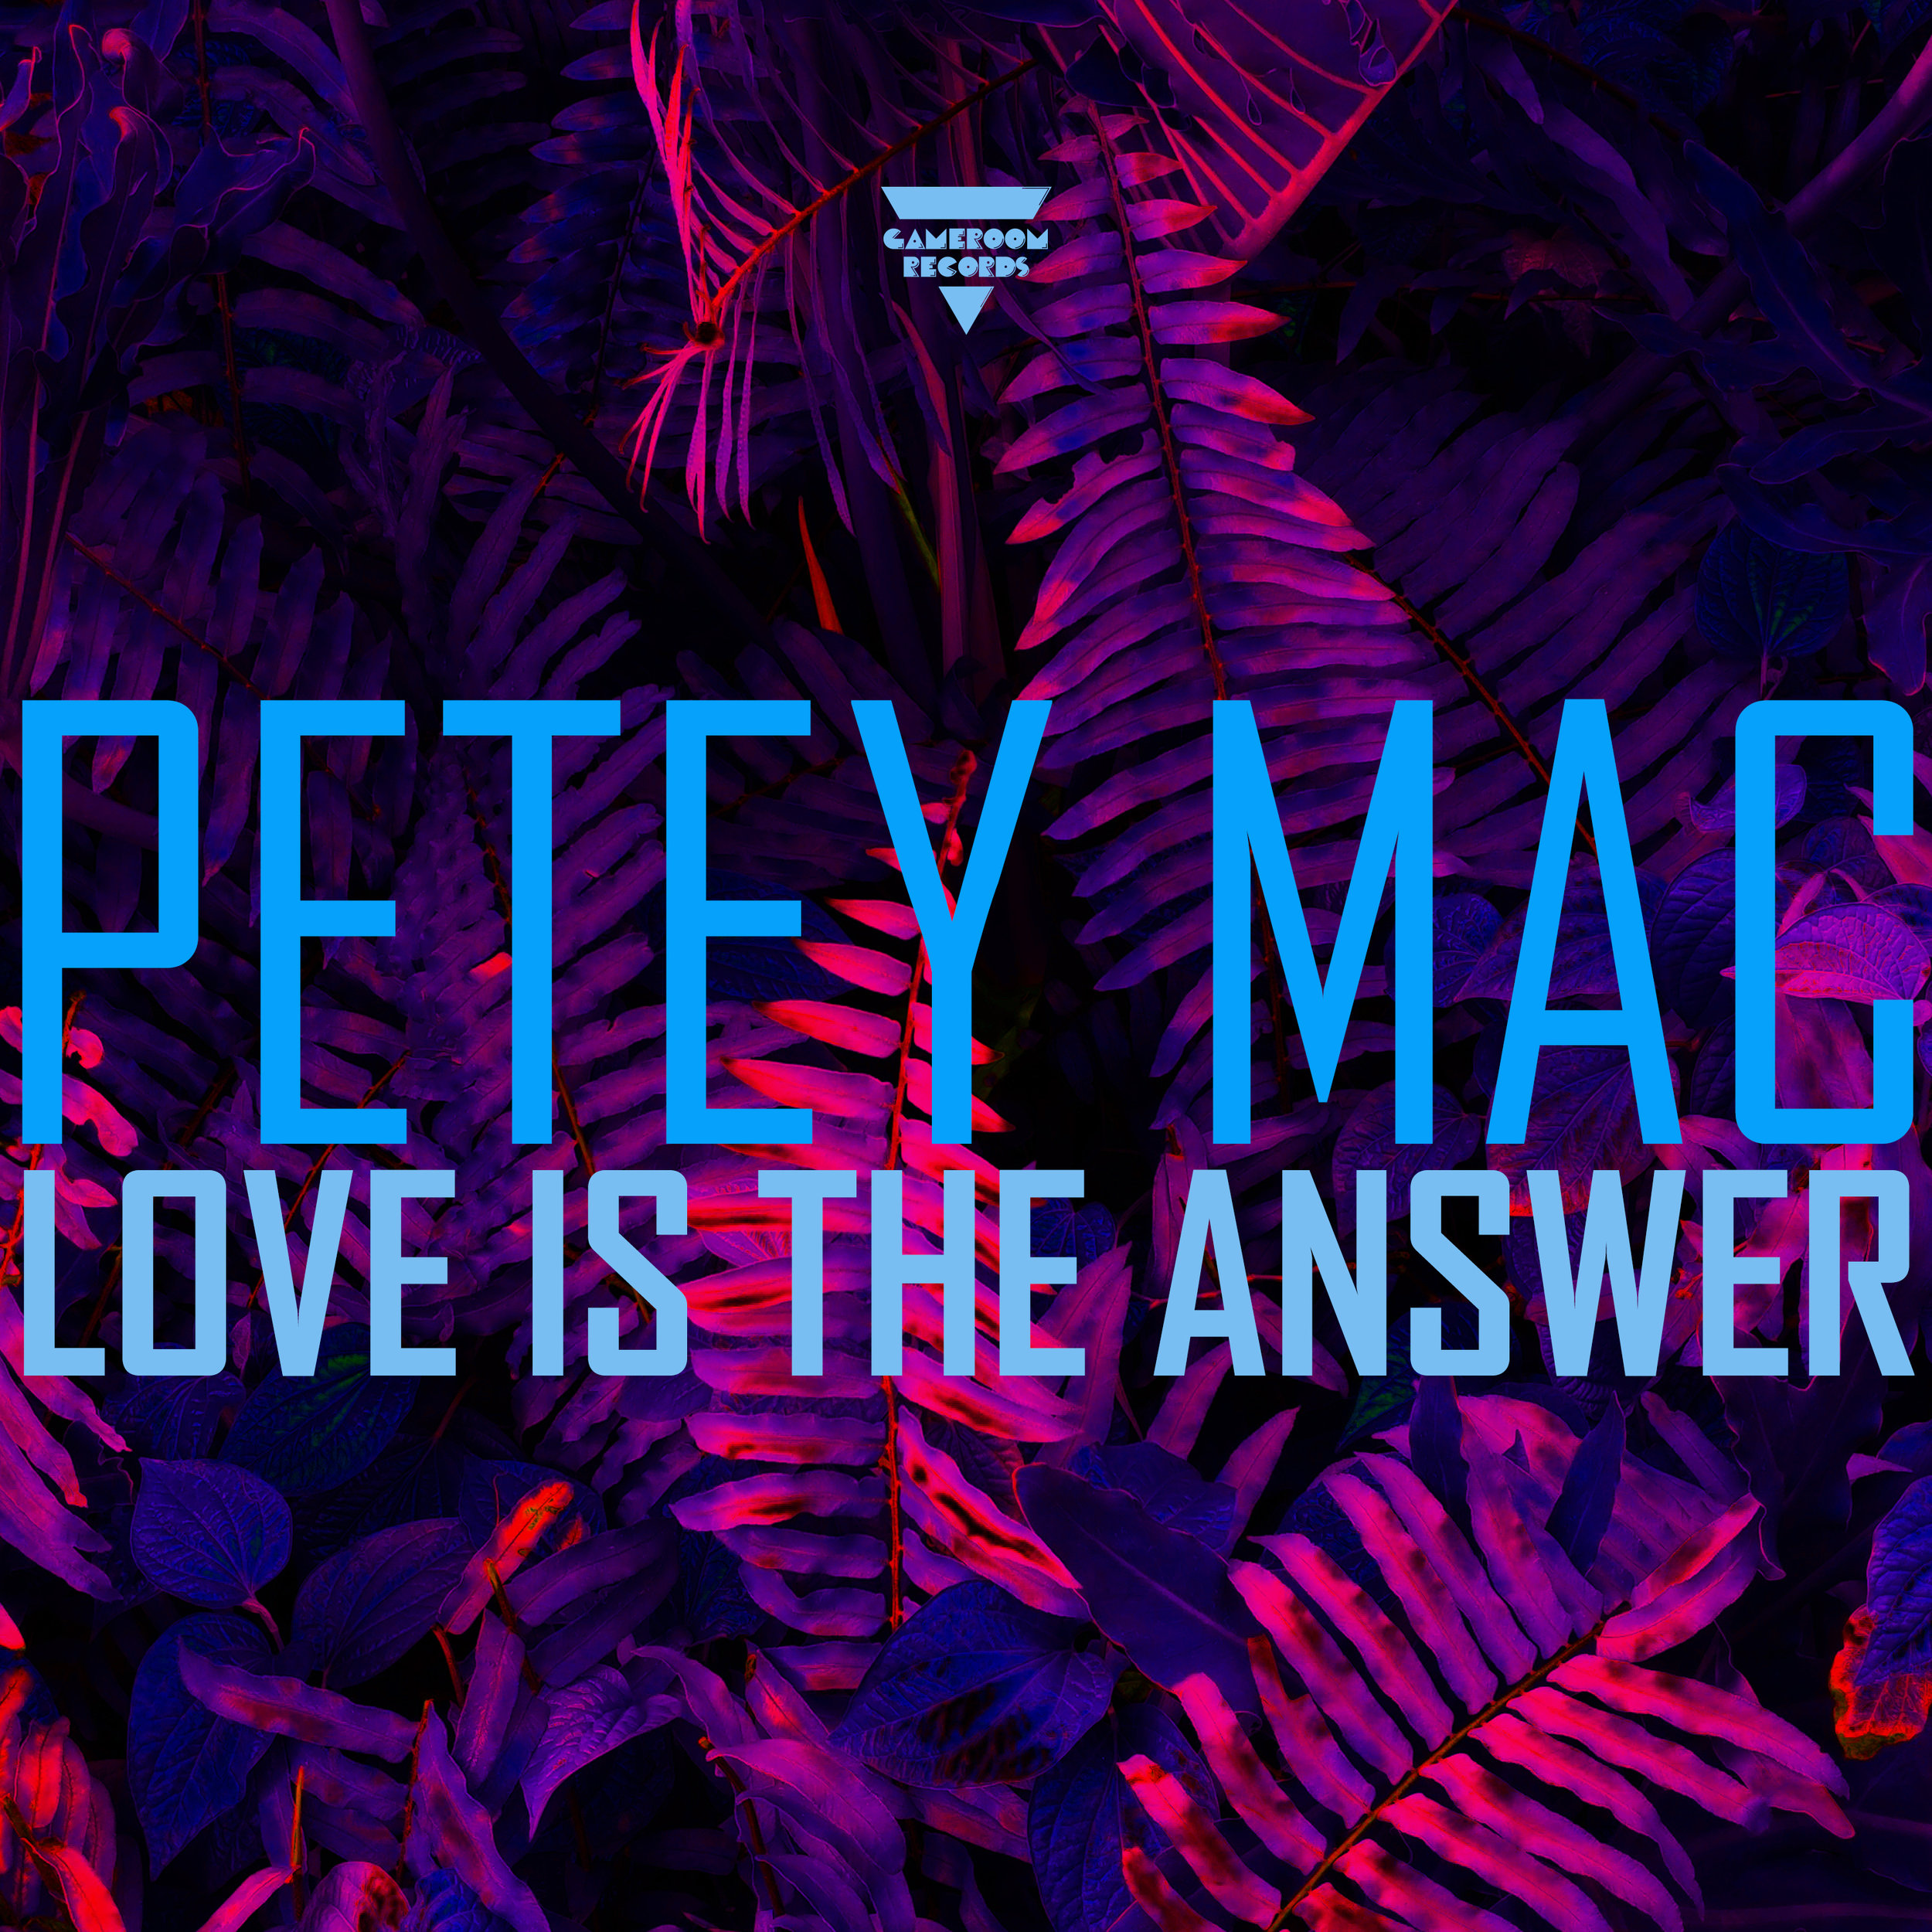 PETEY MAC BRINGS US BACK WITH HIS PIANO HOUSE ANTHEM 'LOVE IS THE ANSWER' -